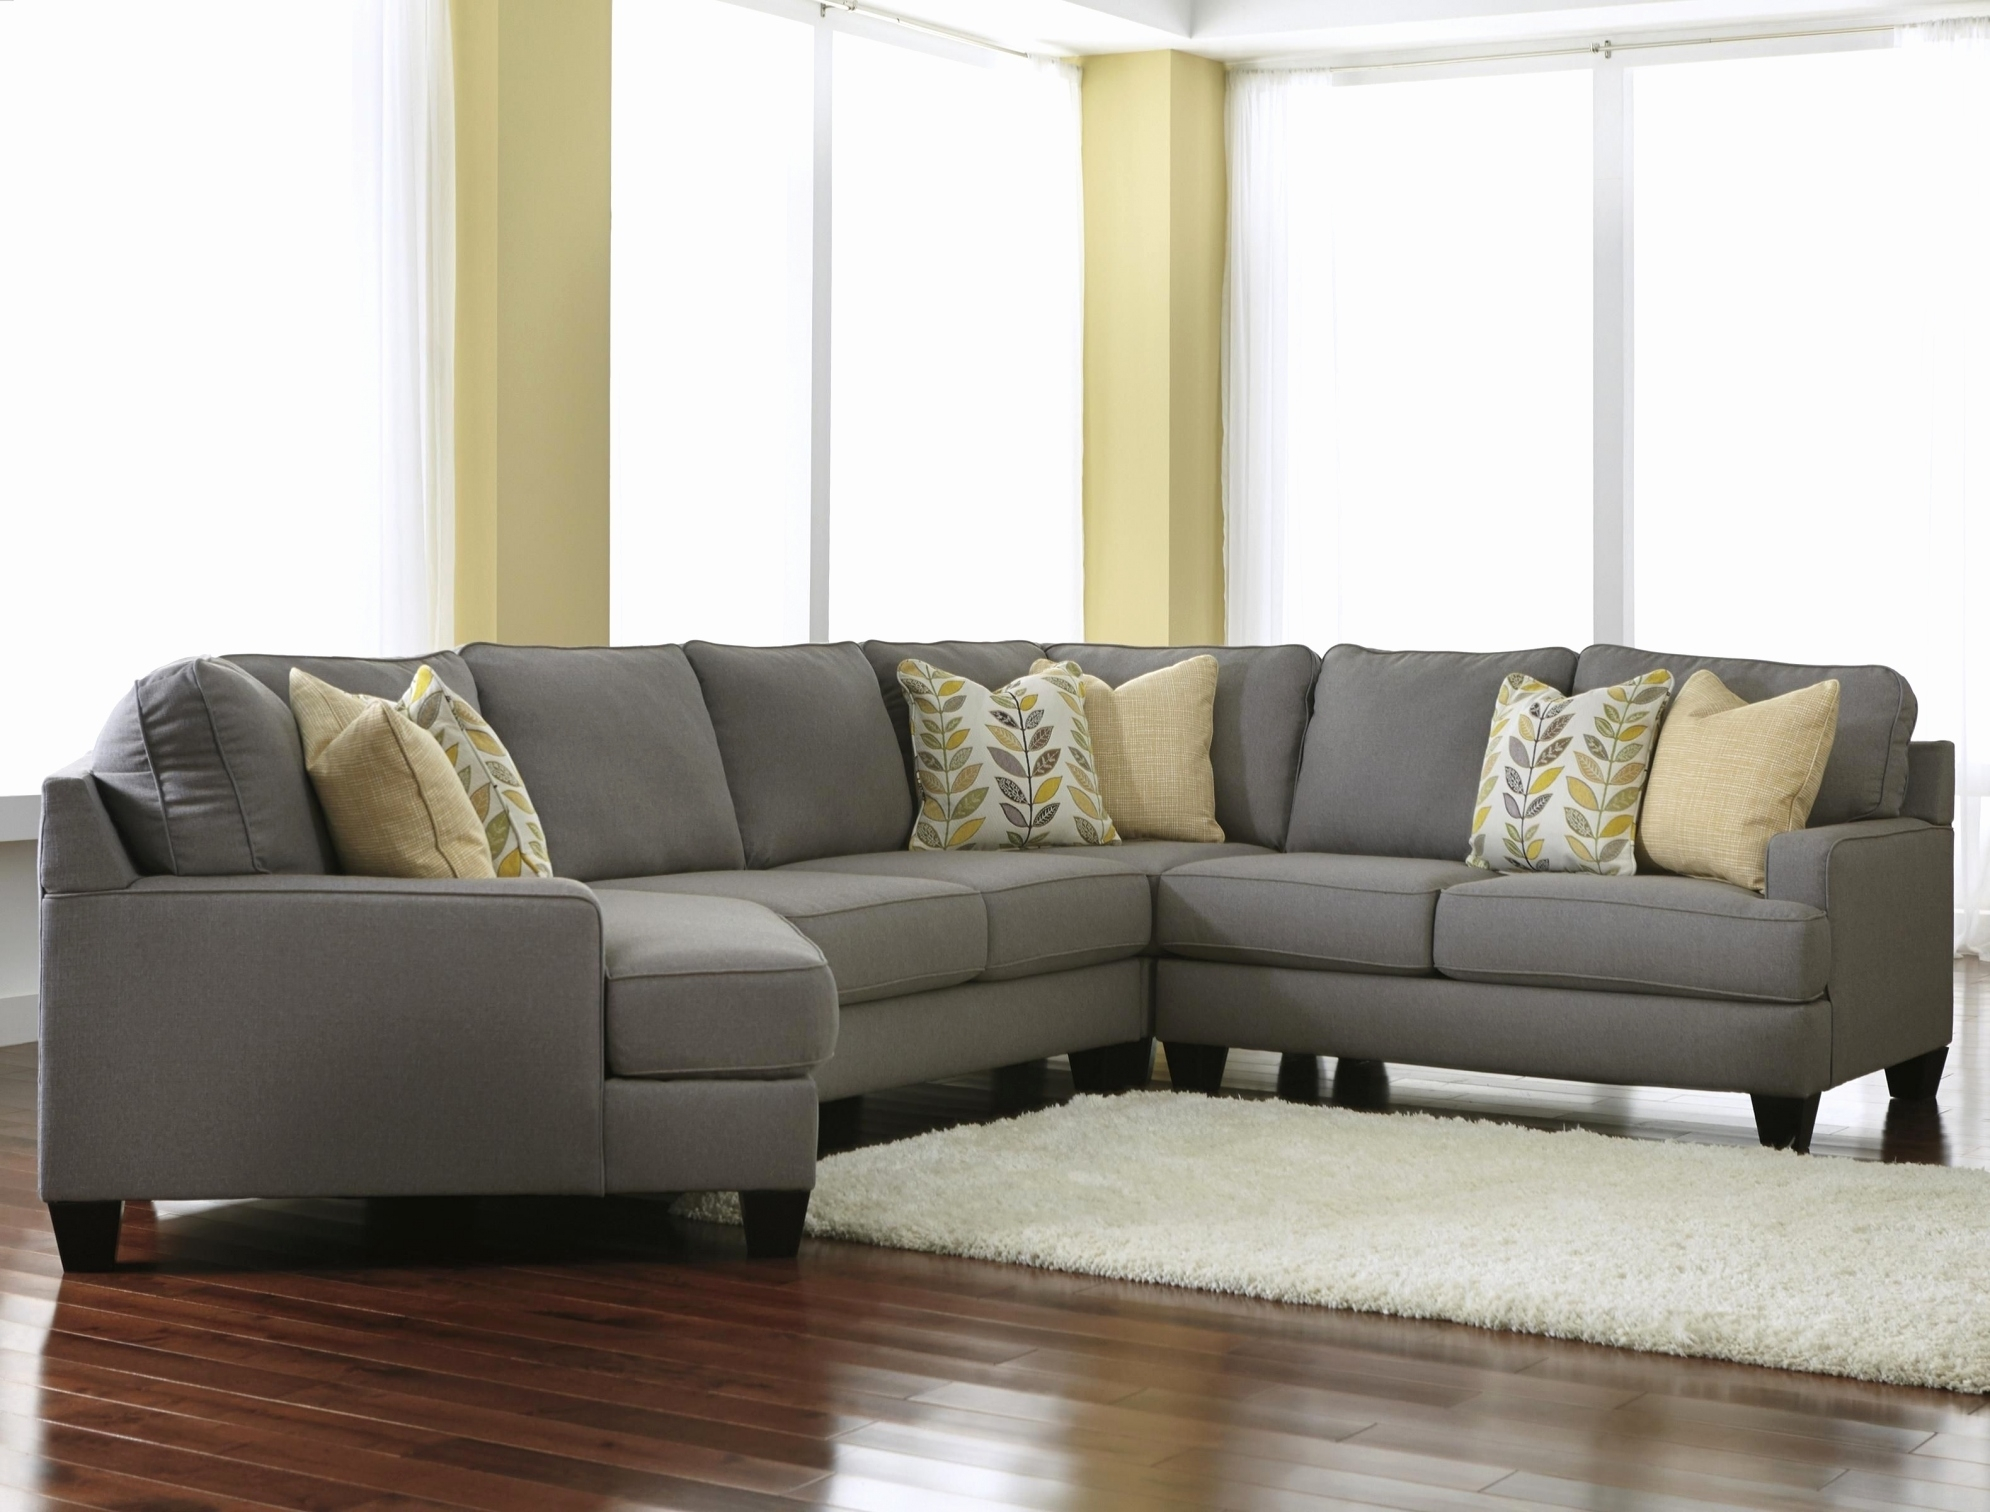 32 Lovely Sectional Sofas Clearance Photos – Sectional Sofa Design Ideas With Regard To Des Moines Ia Sectional Sofas (View 10 of 10)